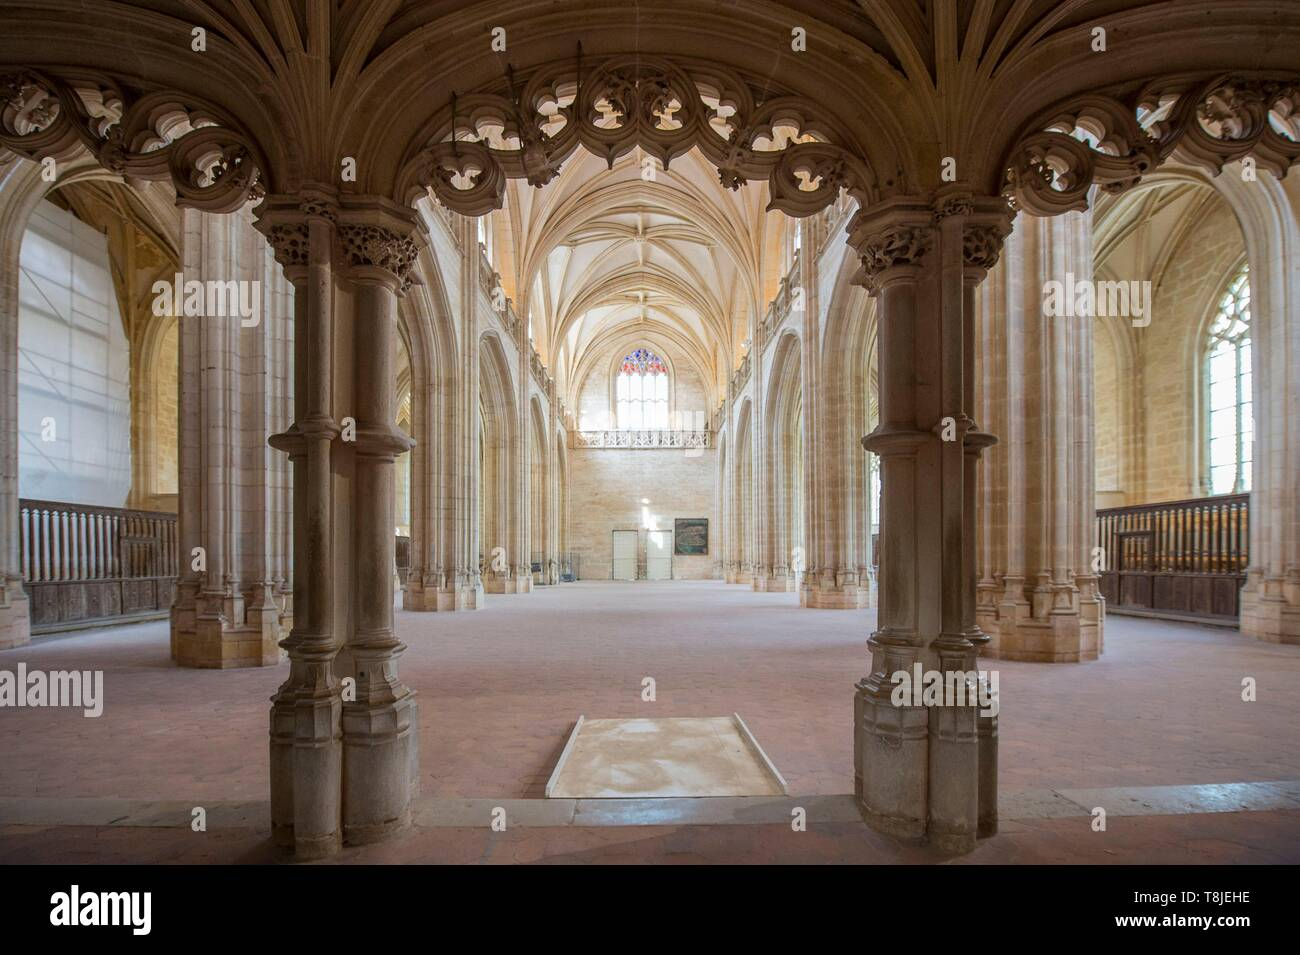 France, Ain, Bourg en Bresse, Royal Monastery of Brou restored in 2018, church of Saint Nicolas de Tolentino, masterpiece of Flamboyant Gothic, the large nave hosts cultural shows seen from the jube Stock Photo